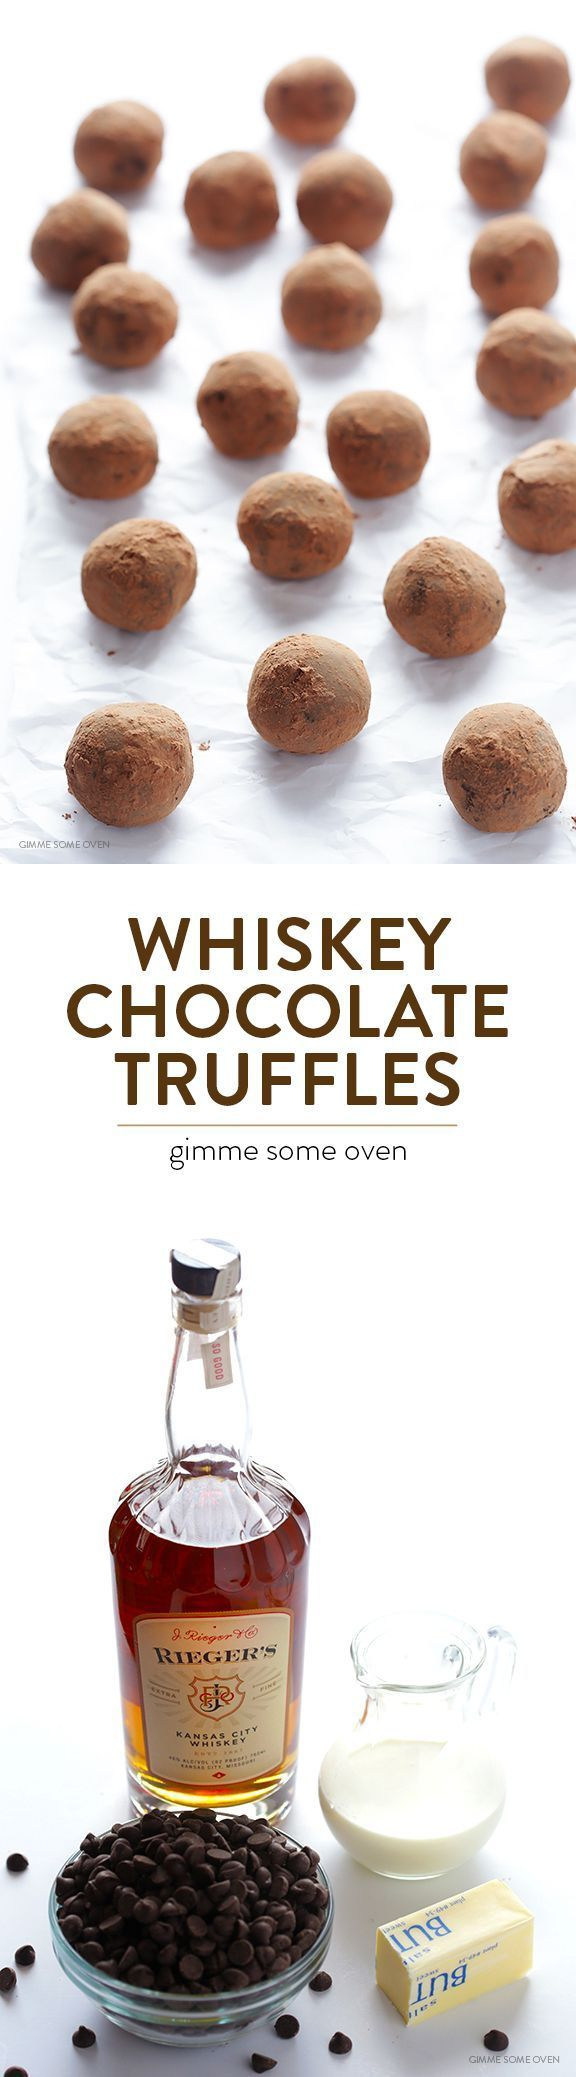 Whiskey Dark Chocolate Truffles 5-Ingredient Whiskey Dark Chocolate Truffles -- super easy dessert to make that's rich and delicious, with a surprise kick of whiskey! | 5-Ingredient Whiskey Dark Chocolate Truffles -- super easy dessert to make that's rich and delicious, with a surprise kick of whiskey! |